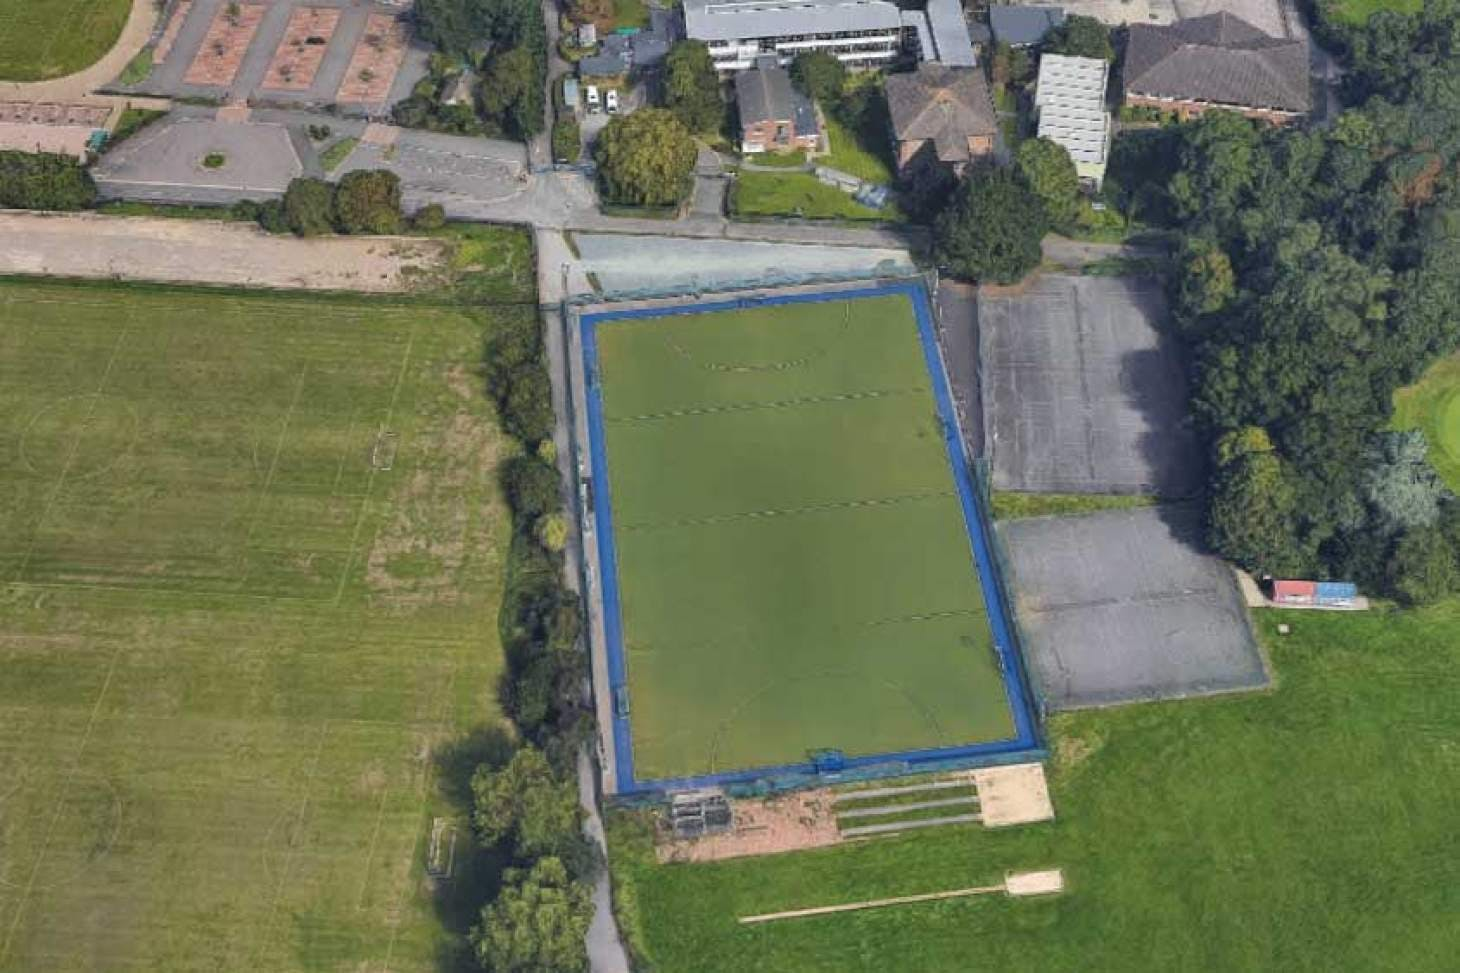 Langley Park Sports Centre 5 a side | Astroturf football pitch